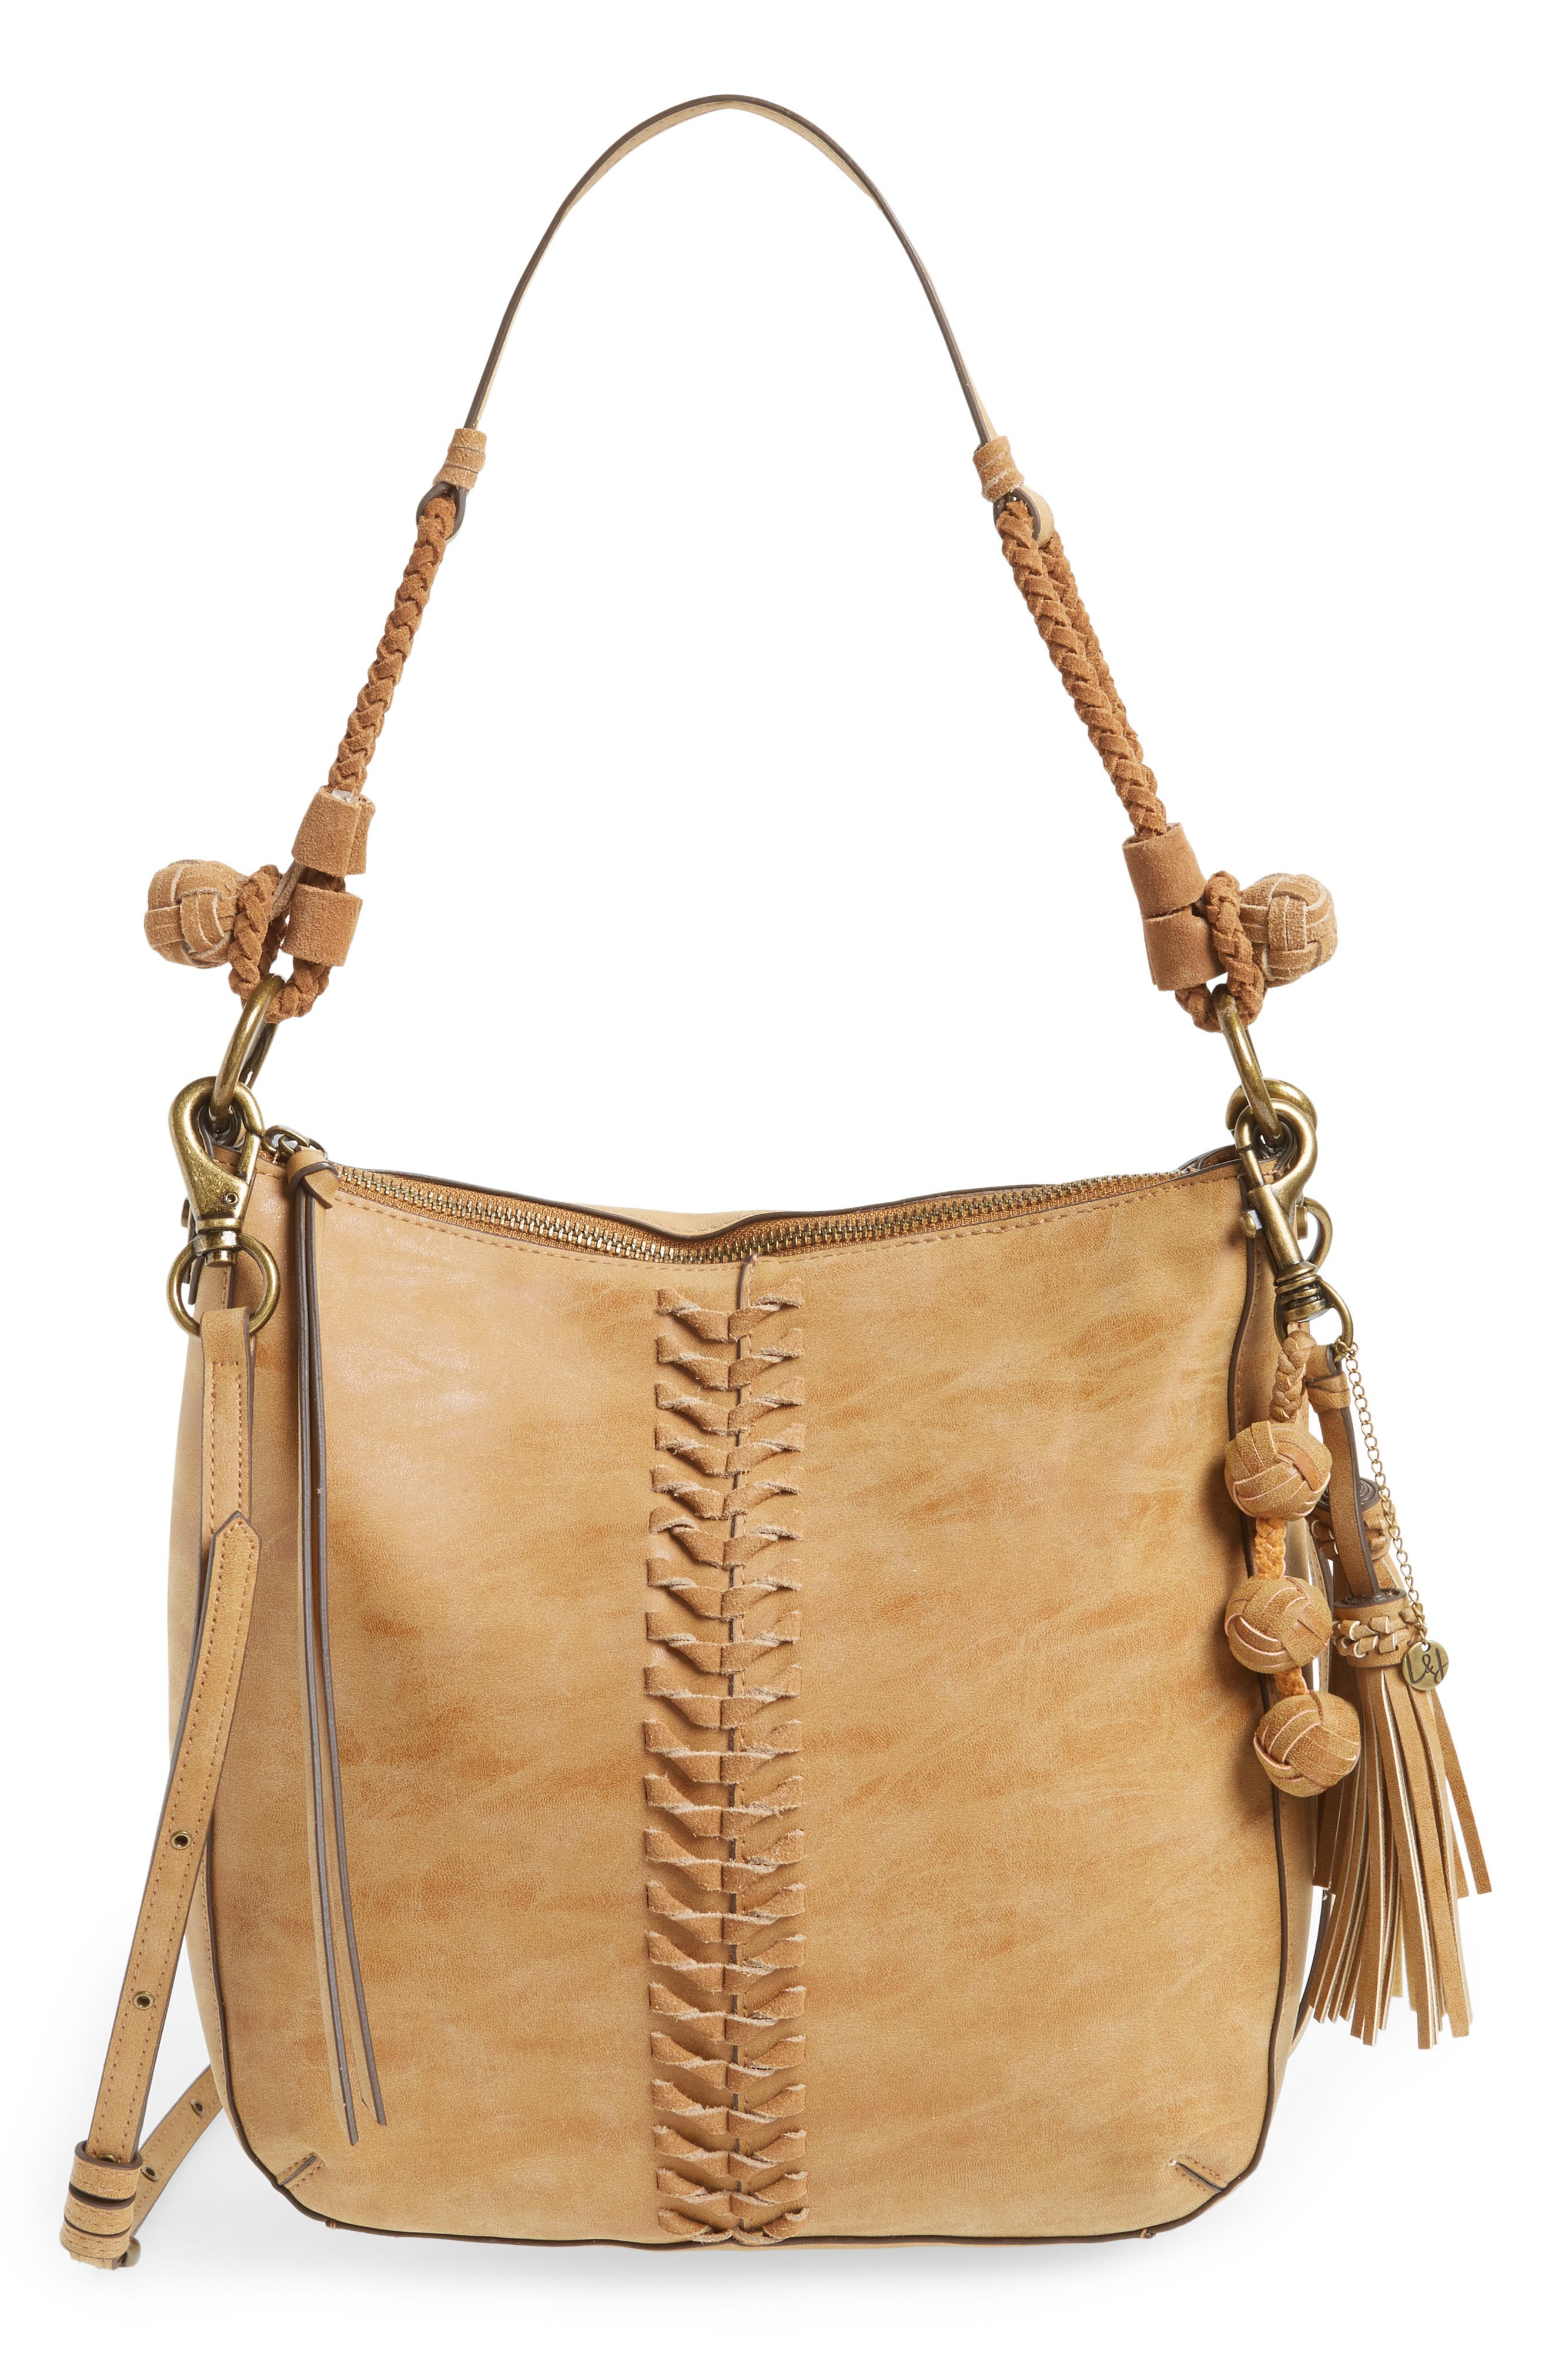 ELLE & JAE GYPSET Zaragoza Faux Leather Crossbody Hobo